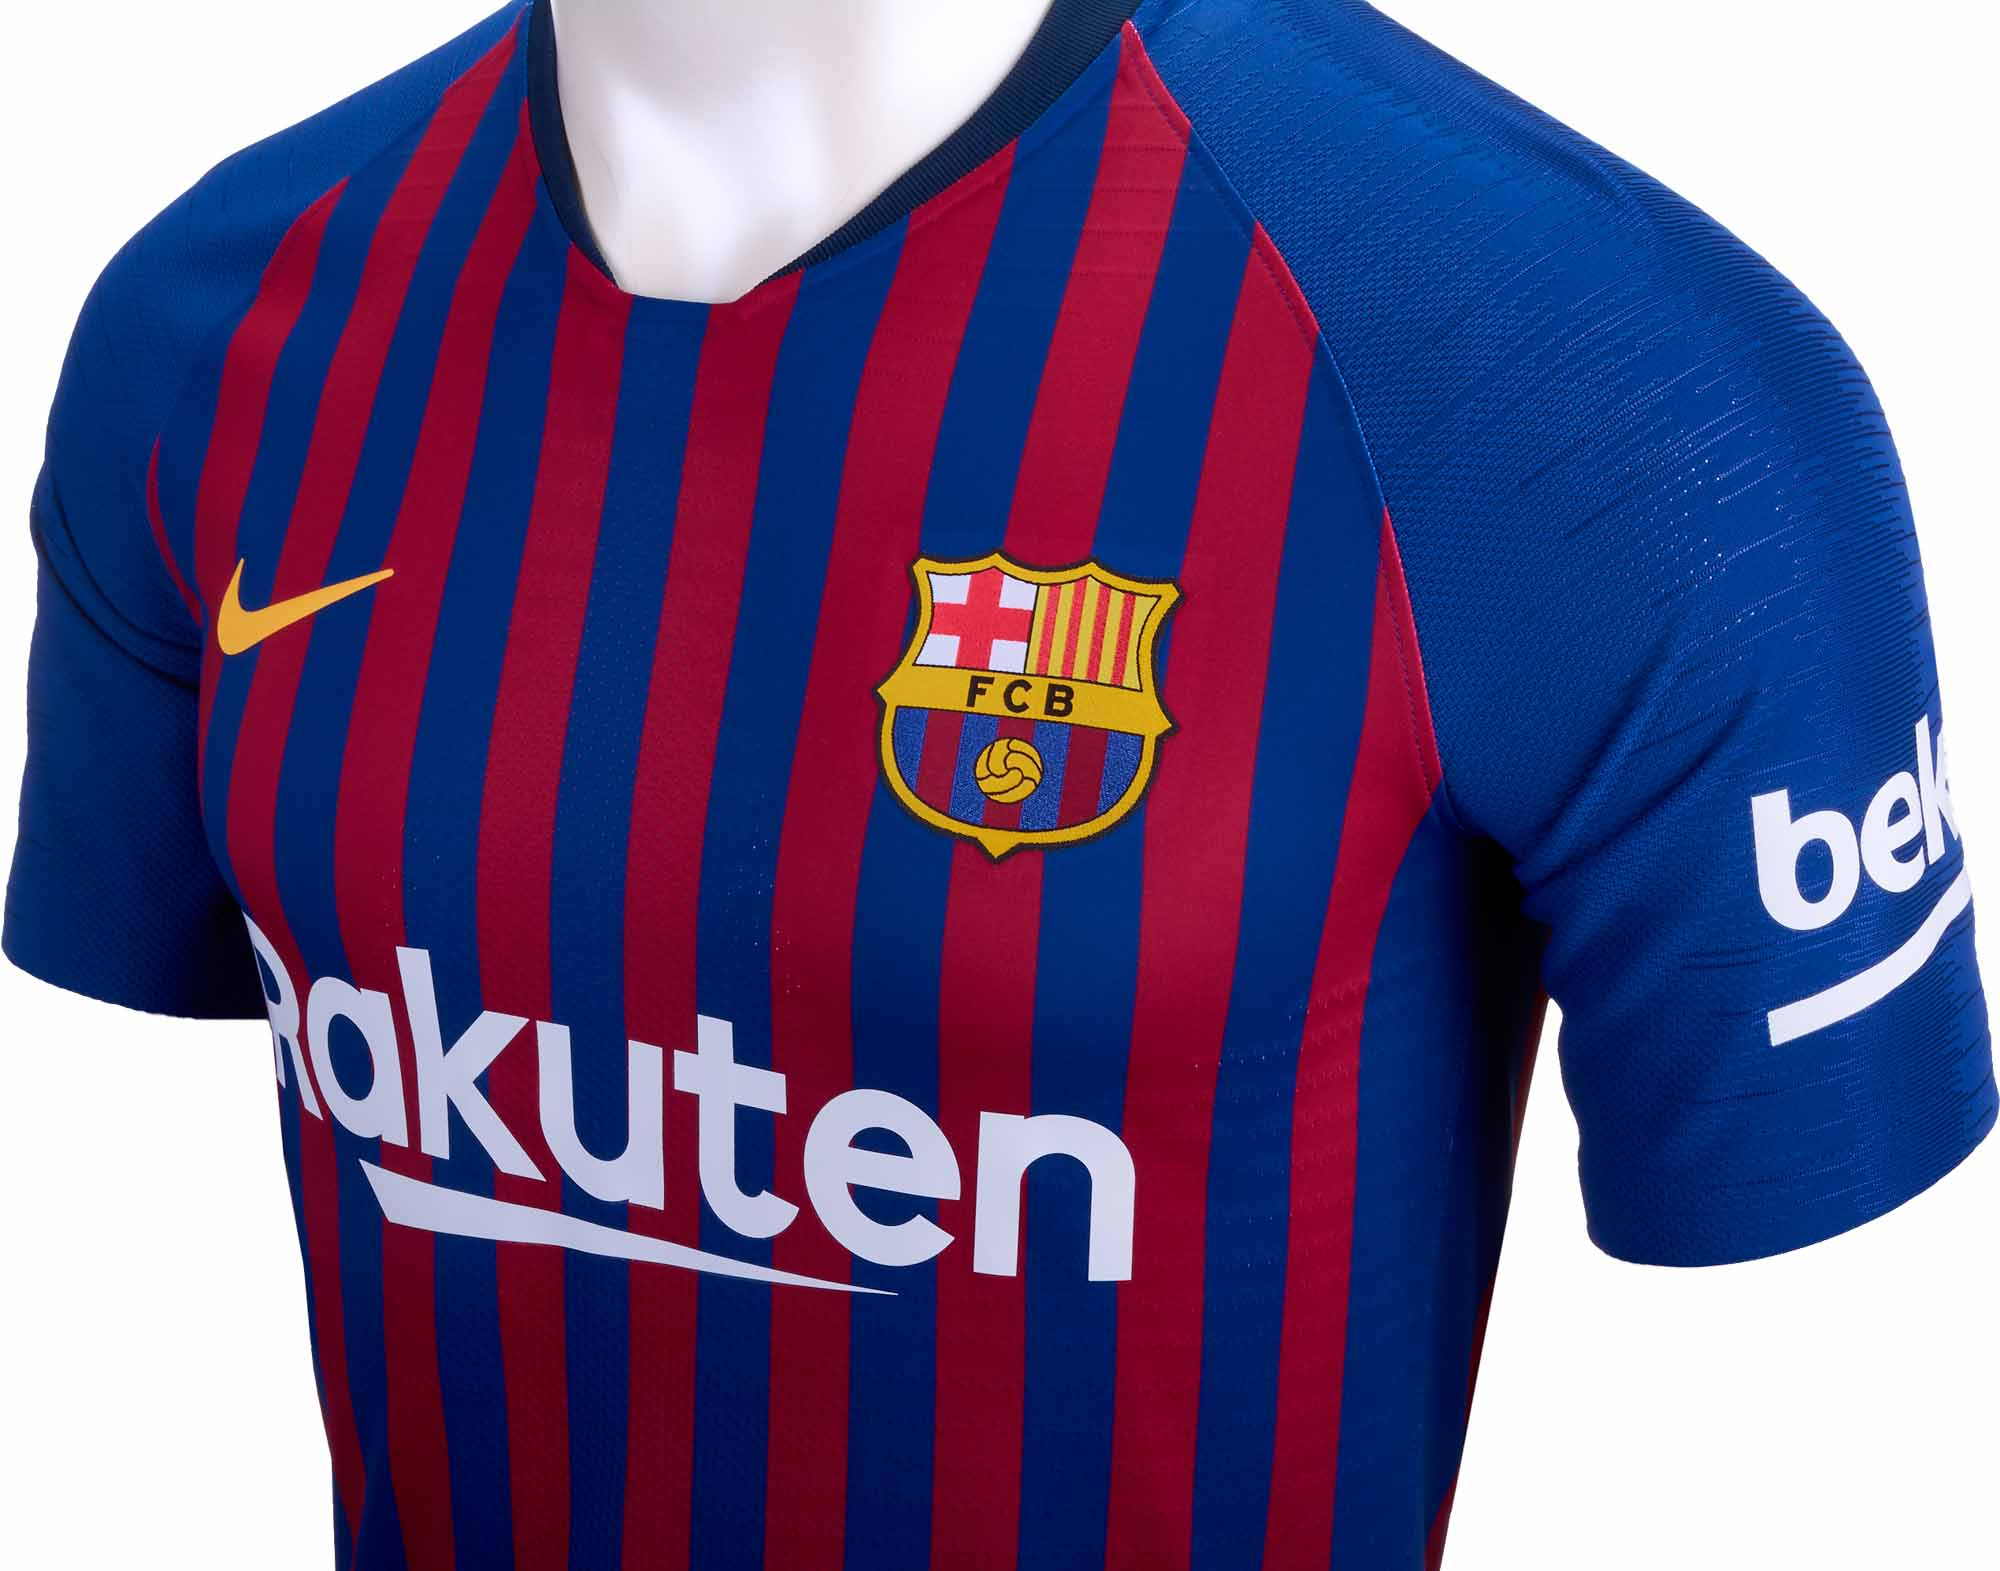 finest selection bd484 925d5 2018/19 Nike Ousmane Dembele Barcelona Home Match Jersey ...